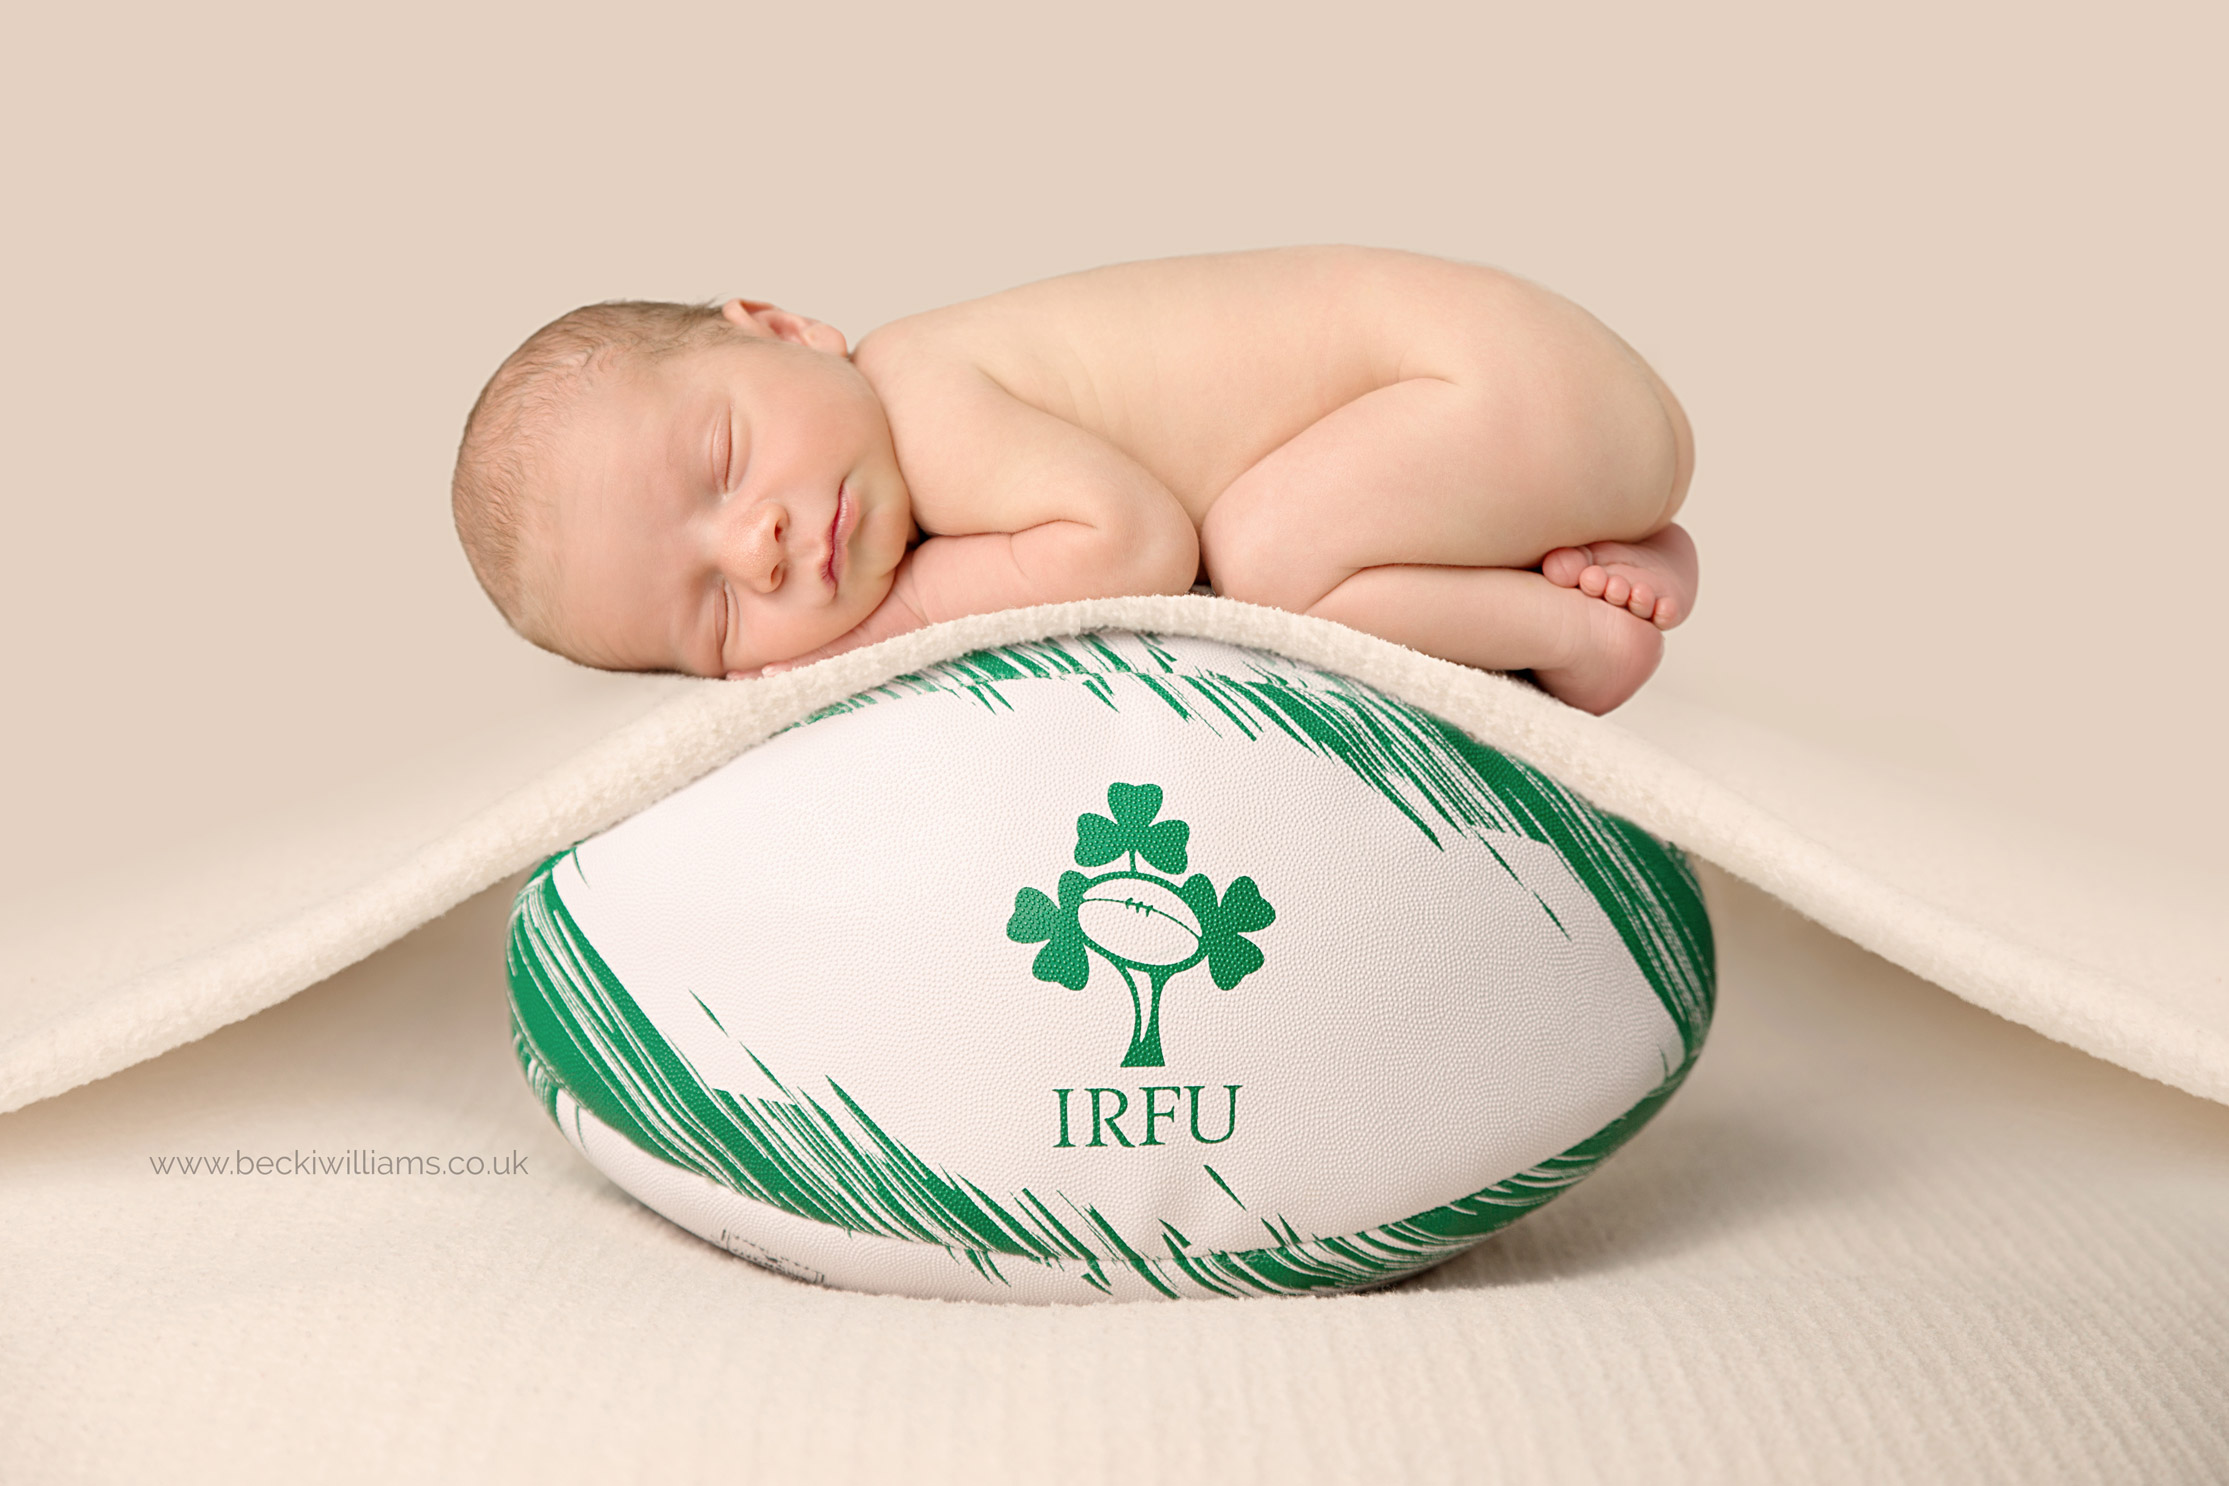 newborn baby laying on a rugby ball in hemel hempstead - this image is made up of three images edited together